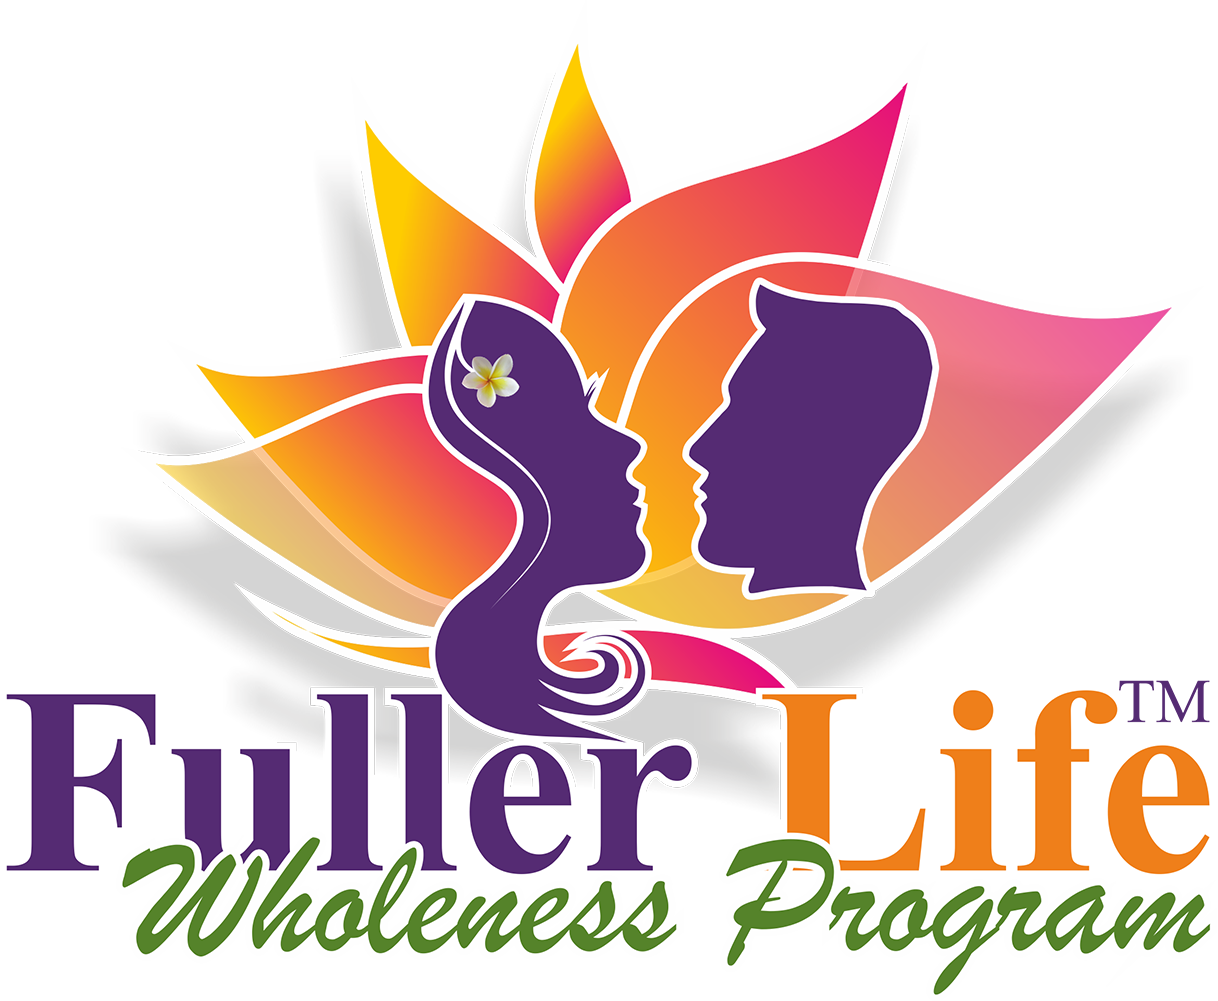 Fuller Life Wholeness Program